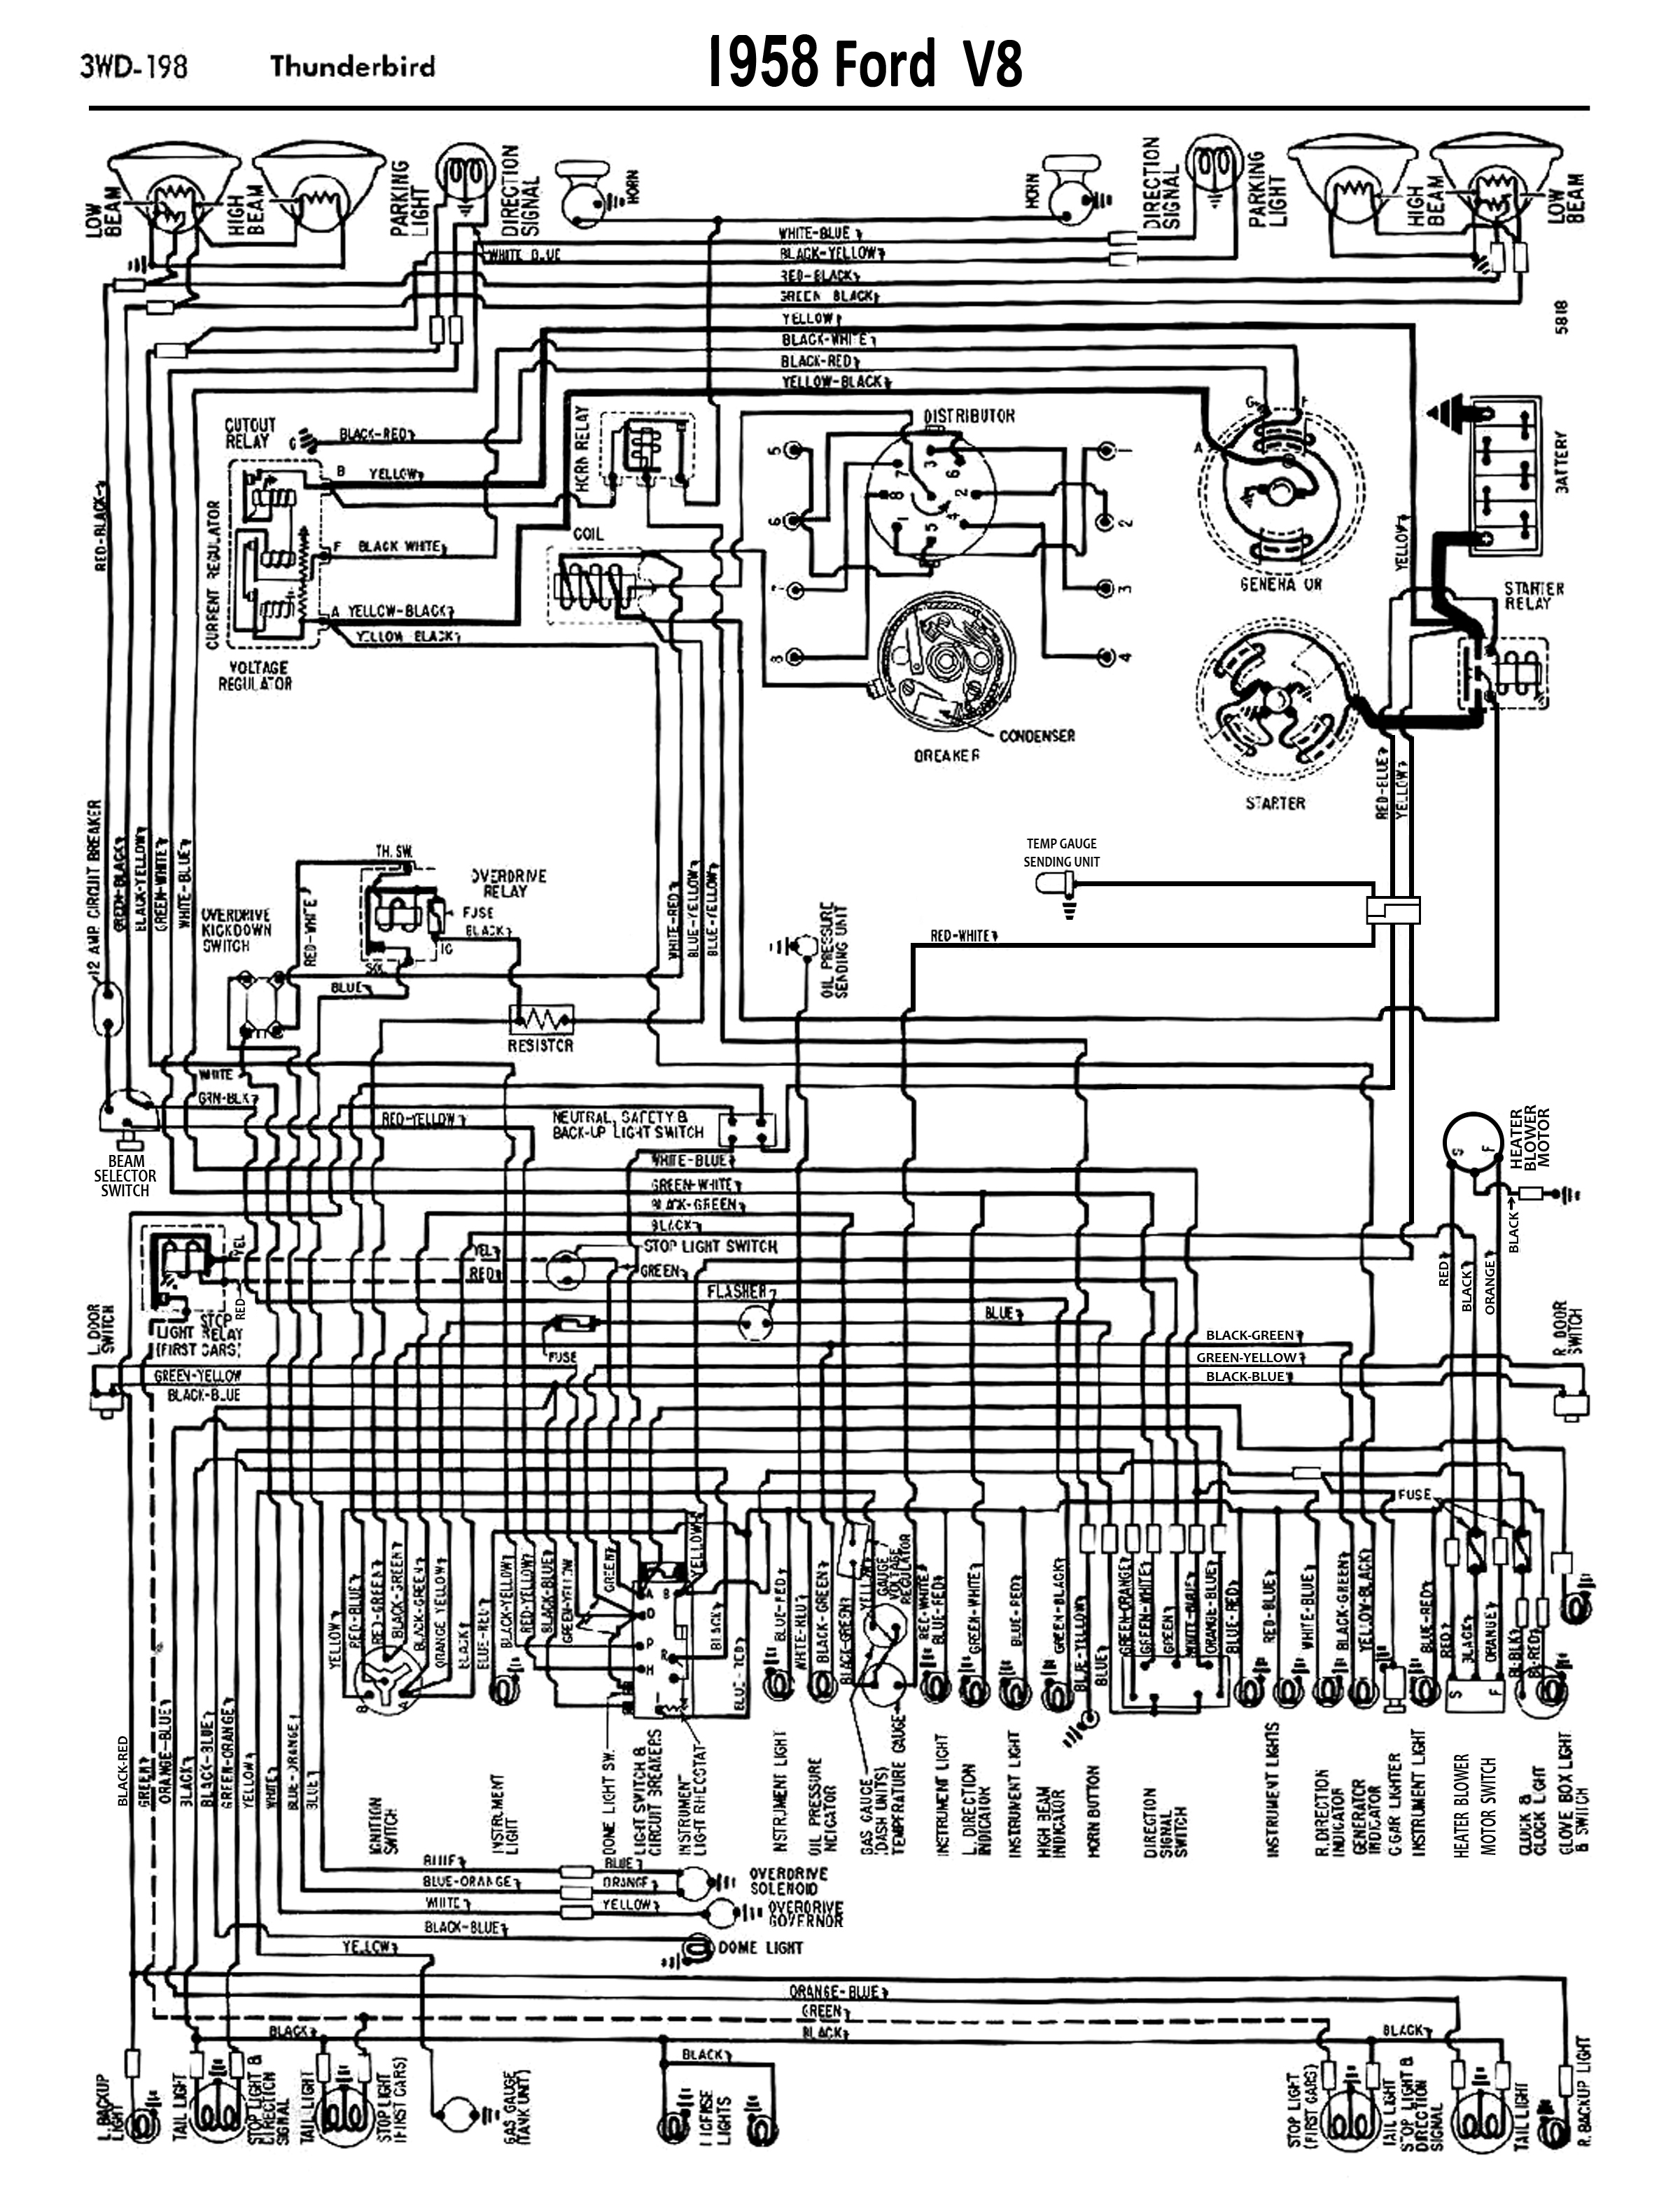 1958 68 Ford Electrical Schematics Dodge Wiring Diagram 1